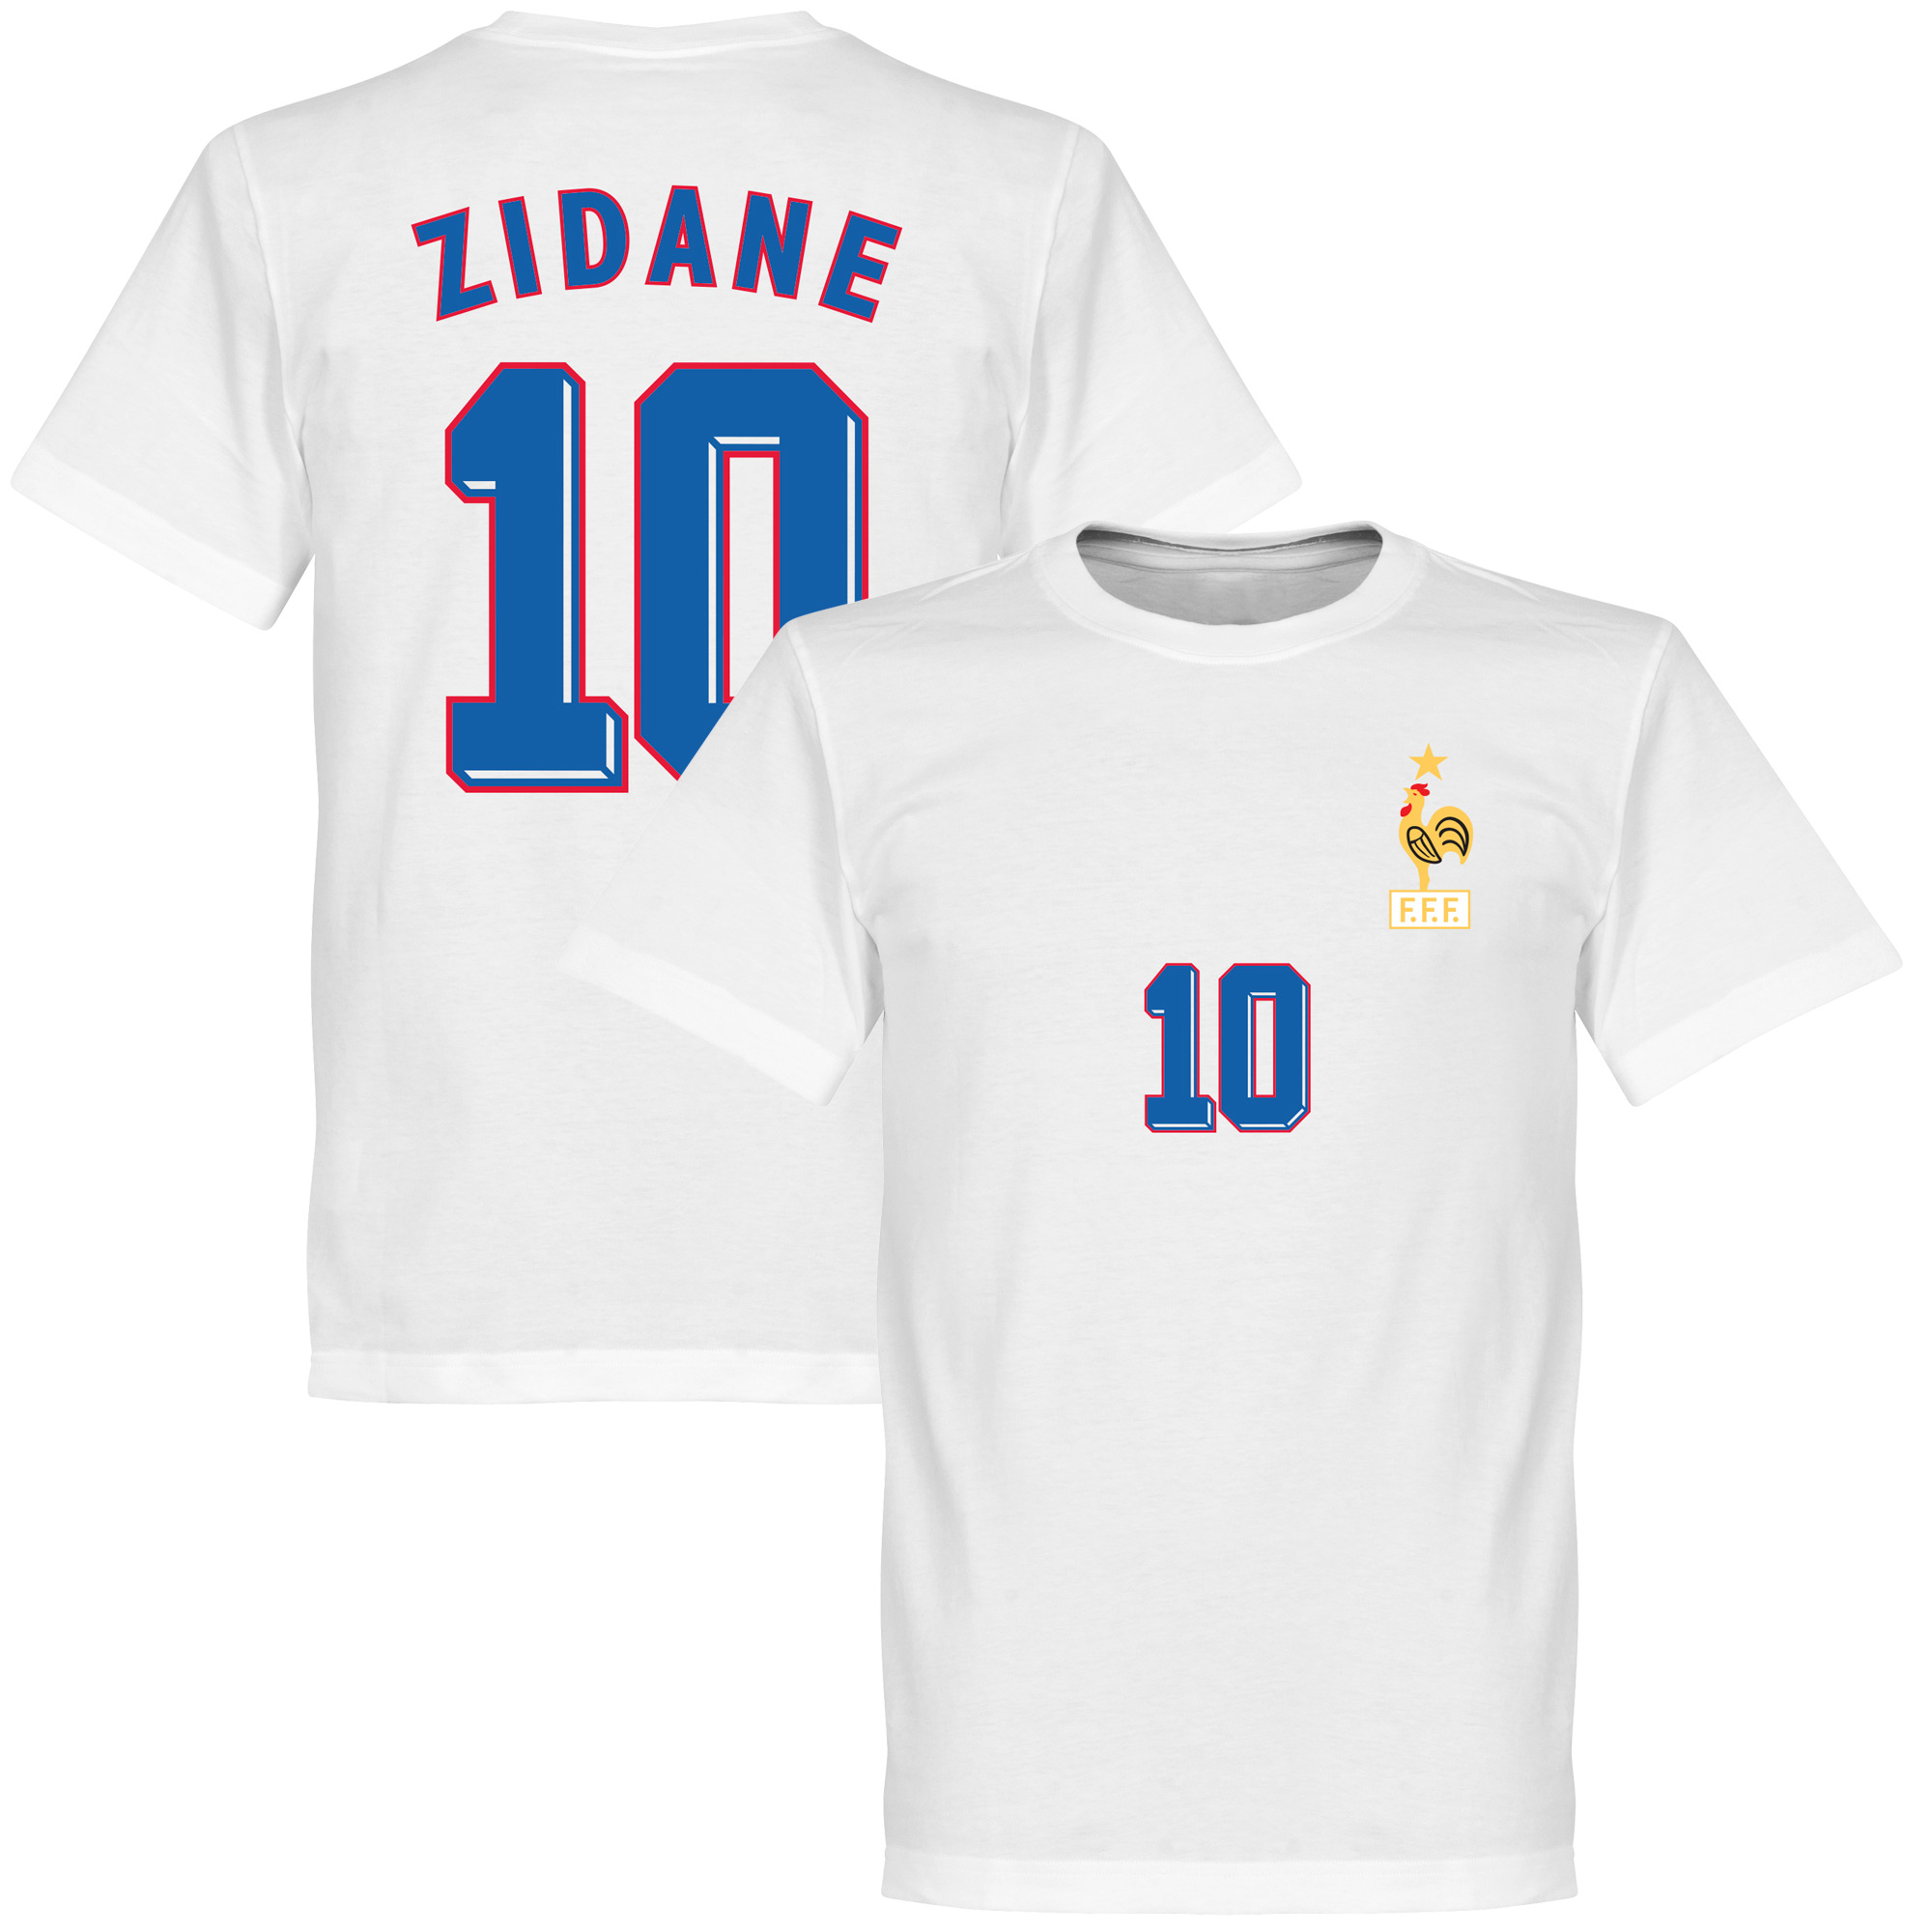 Zidane 1998 Away Tee - White - XXXXL